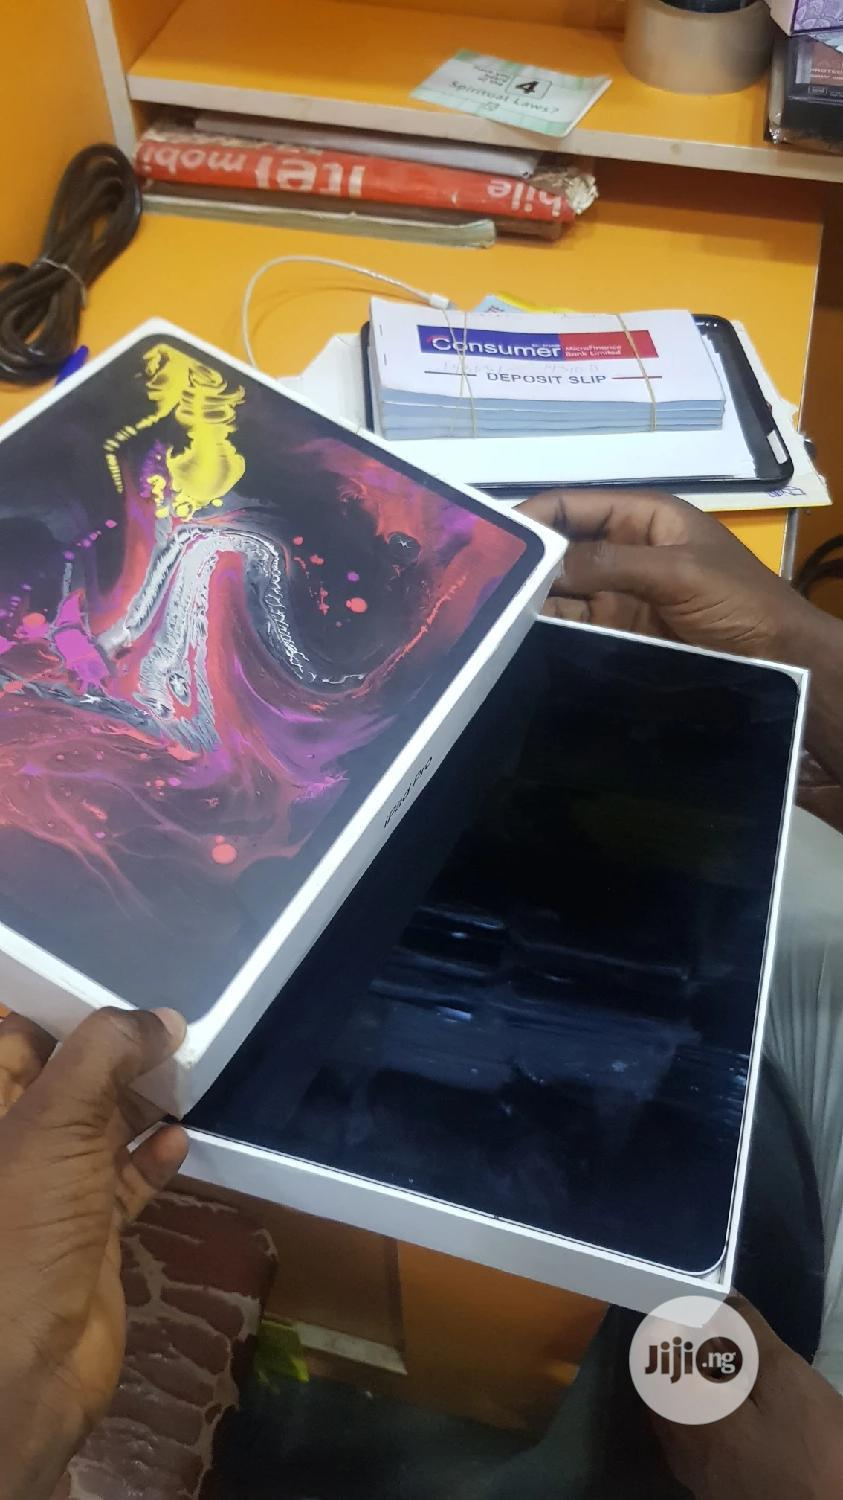 Apple iPad Pro 12.9 (2017) 512 GB   Tablets for sale in Wuse, Abuja (FCT) State, Nigeria